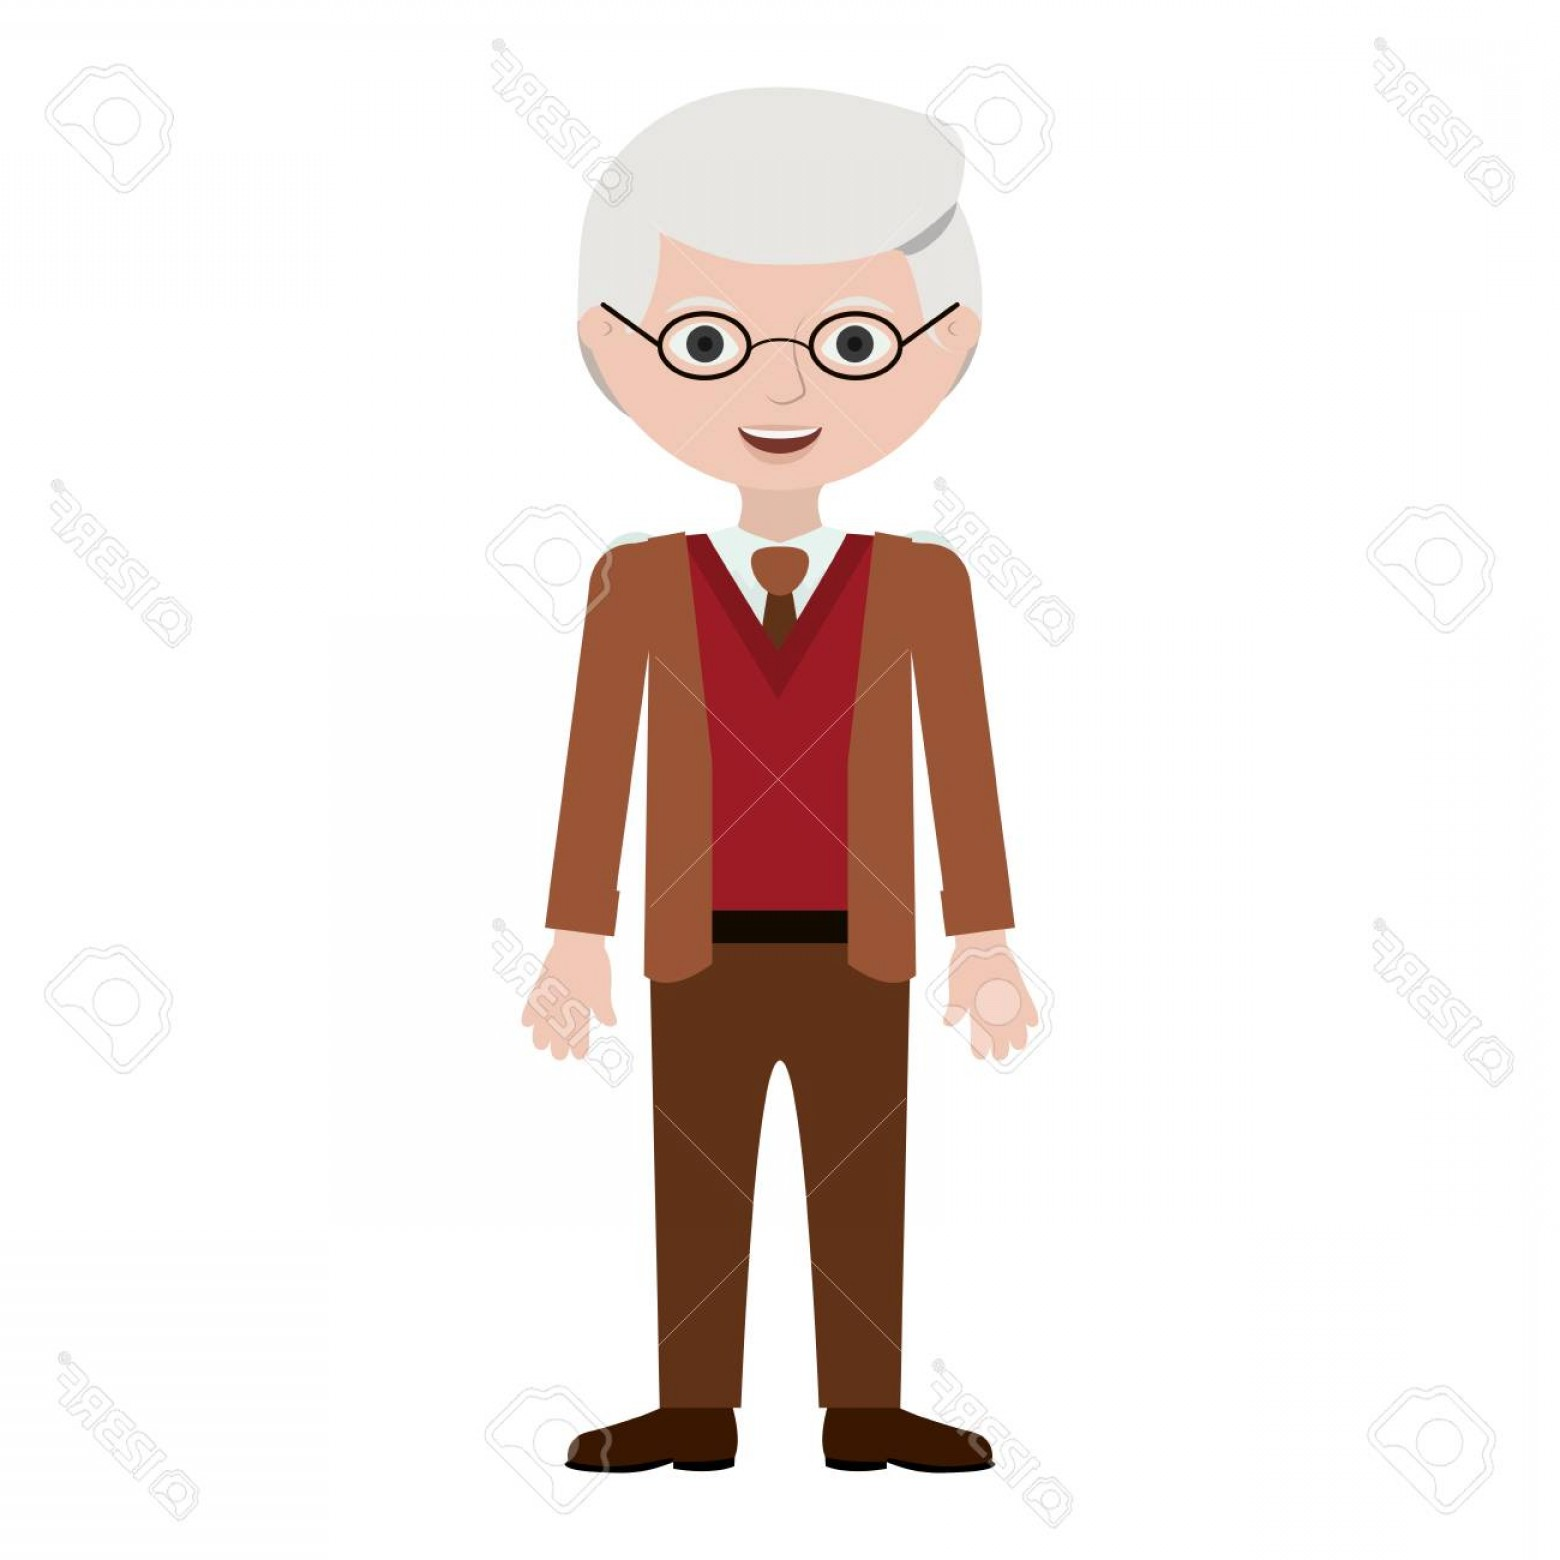 Old Male Icon Vector: Photostock Vector Grandfather Cartoon Icon Old Person Man Male And Avatar Theme Isolated Design Vector Illustration